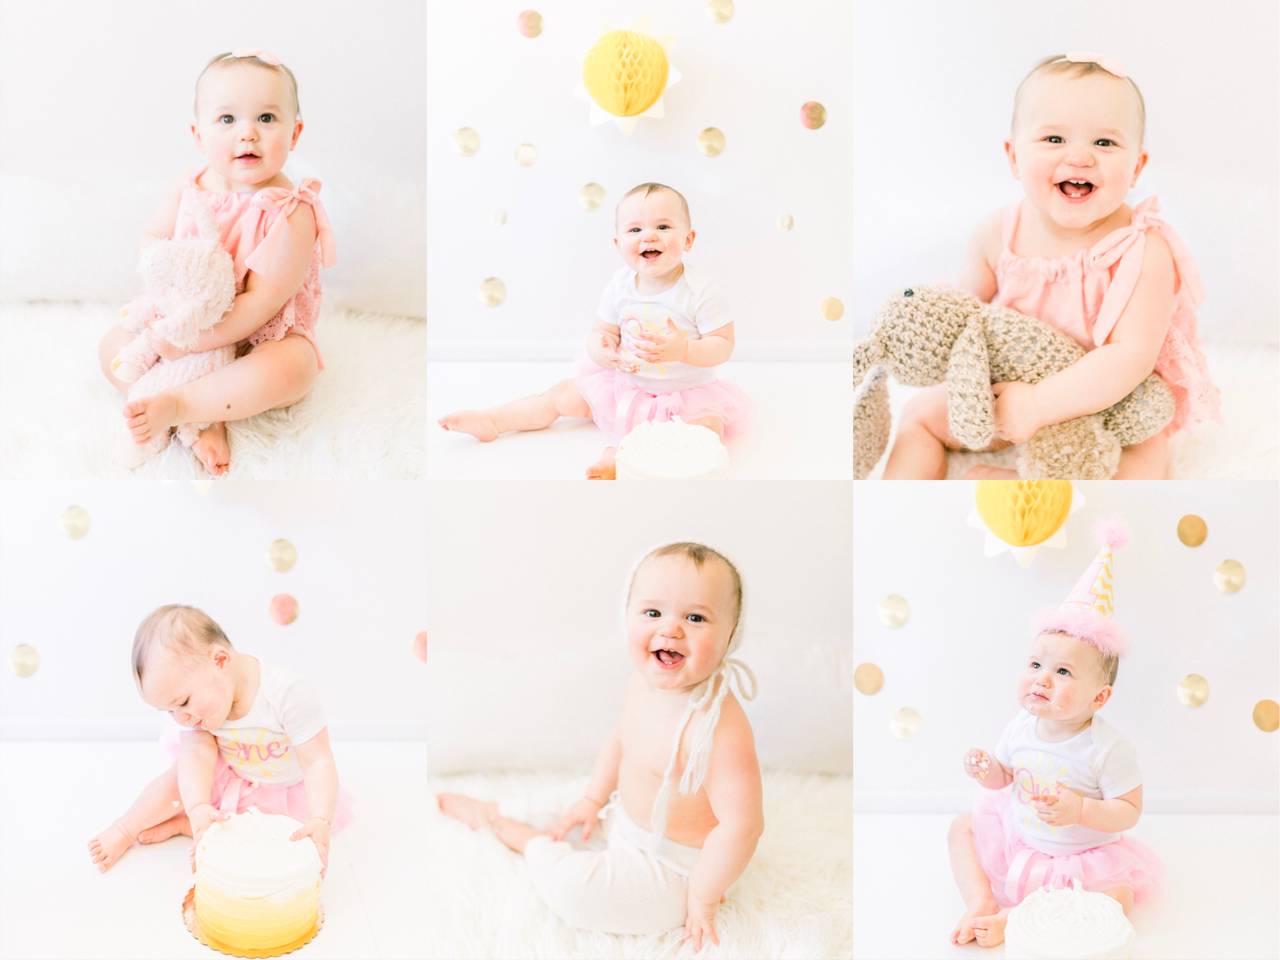 Paige | Giggly and Curious 12 Month Baby Milestone Photography Session with Cake Smash | Noblesville, IN Newborn Photographer